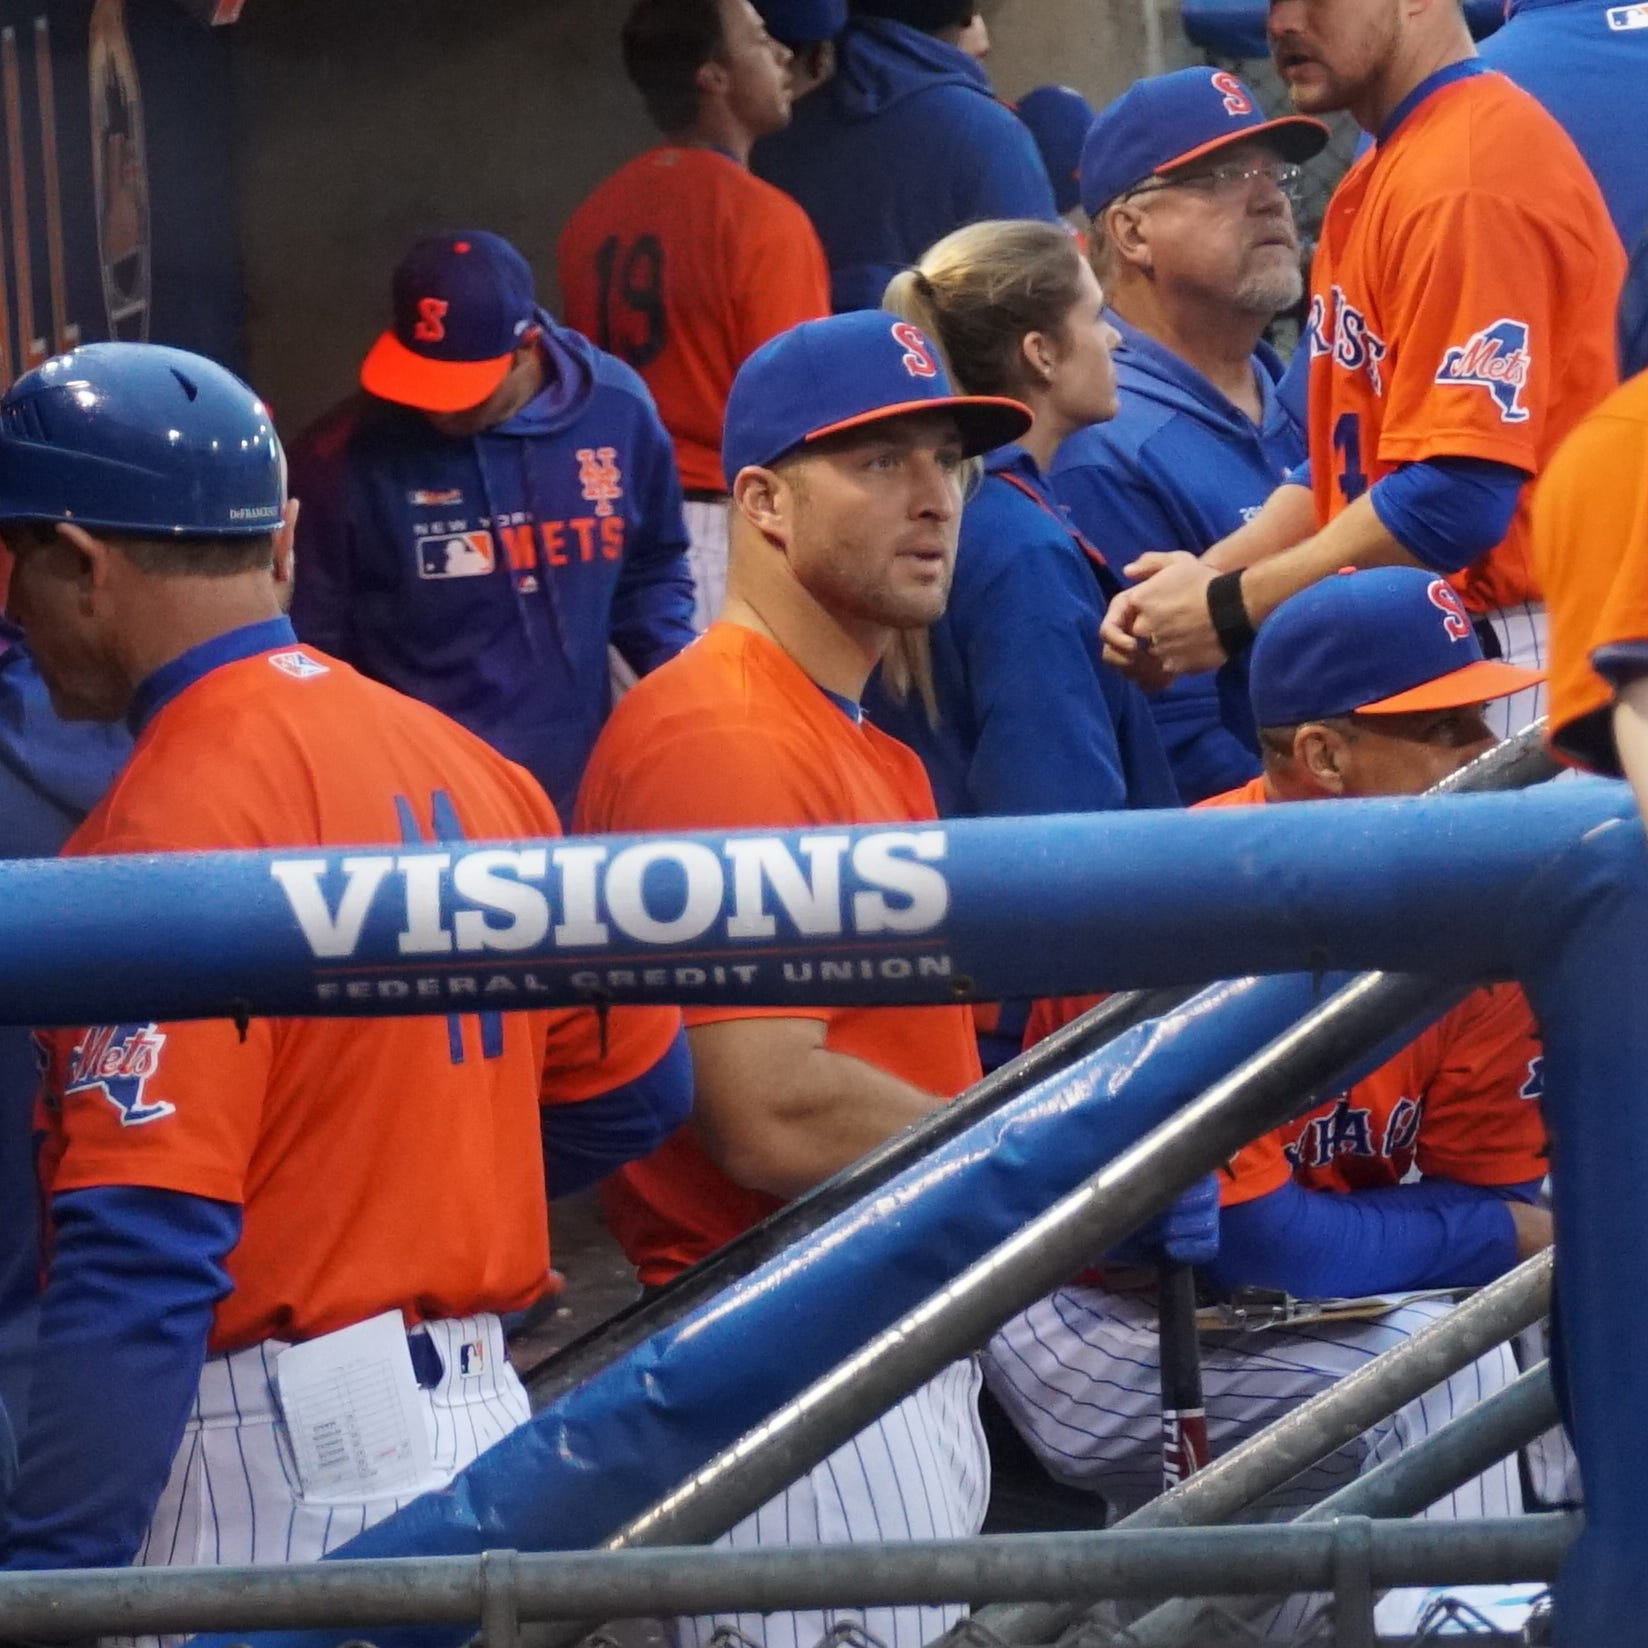 Tim Tebow's baseball inexperience exposed at Triple-A level